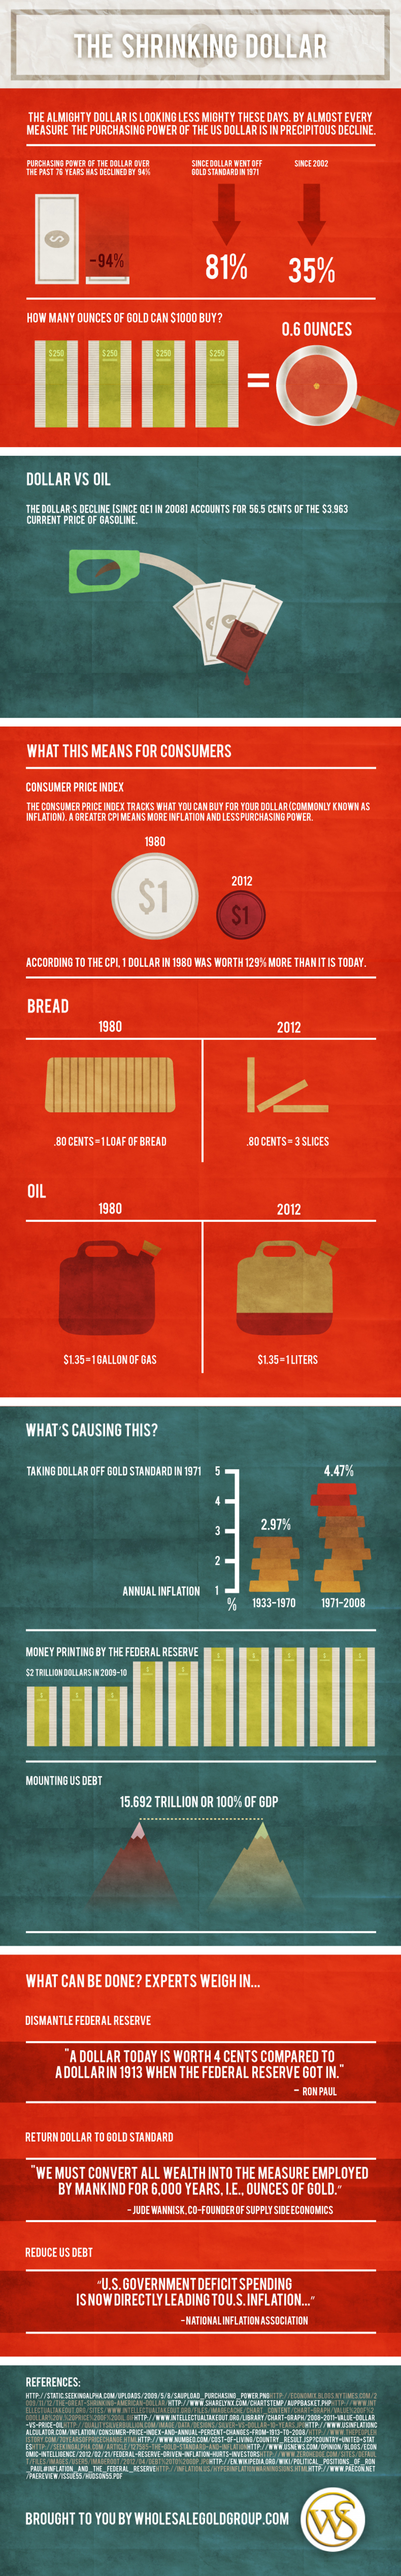 The Shrinking Dollar Infographic